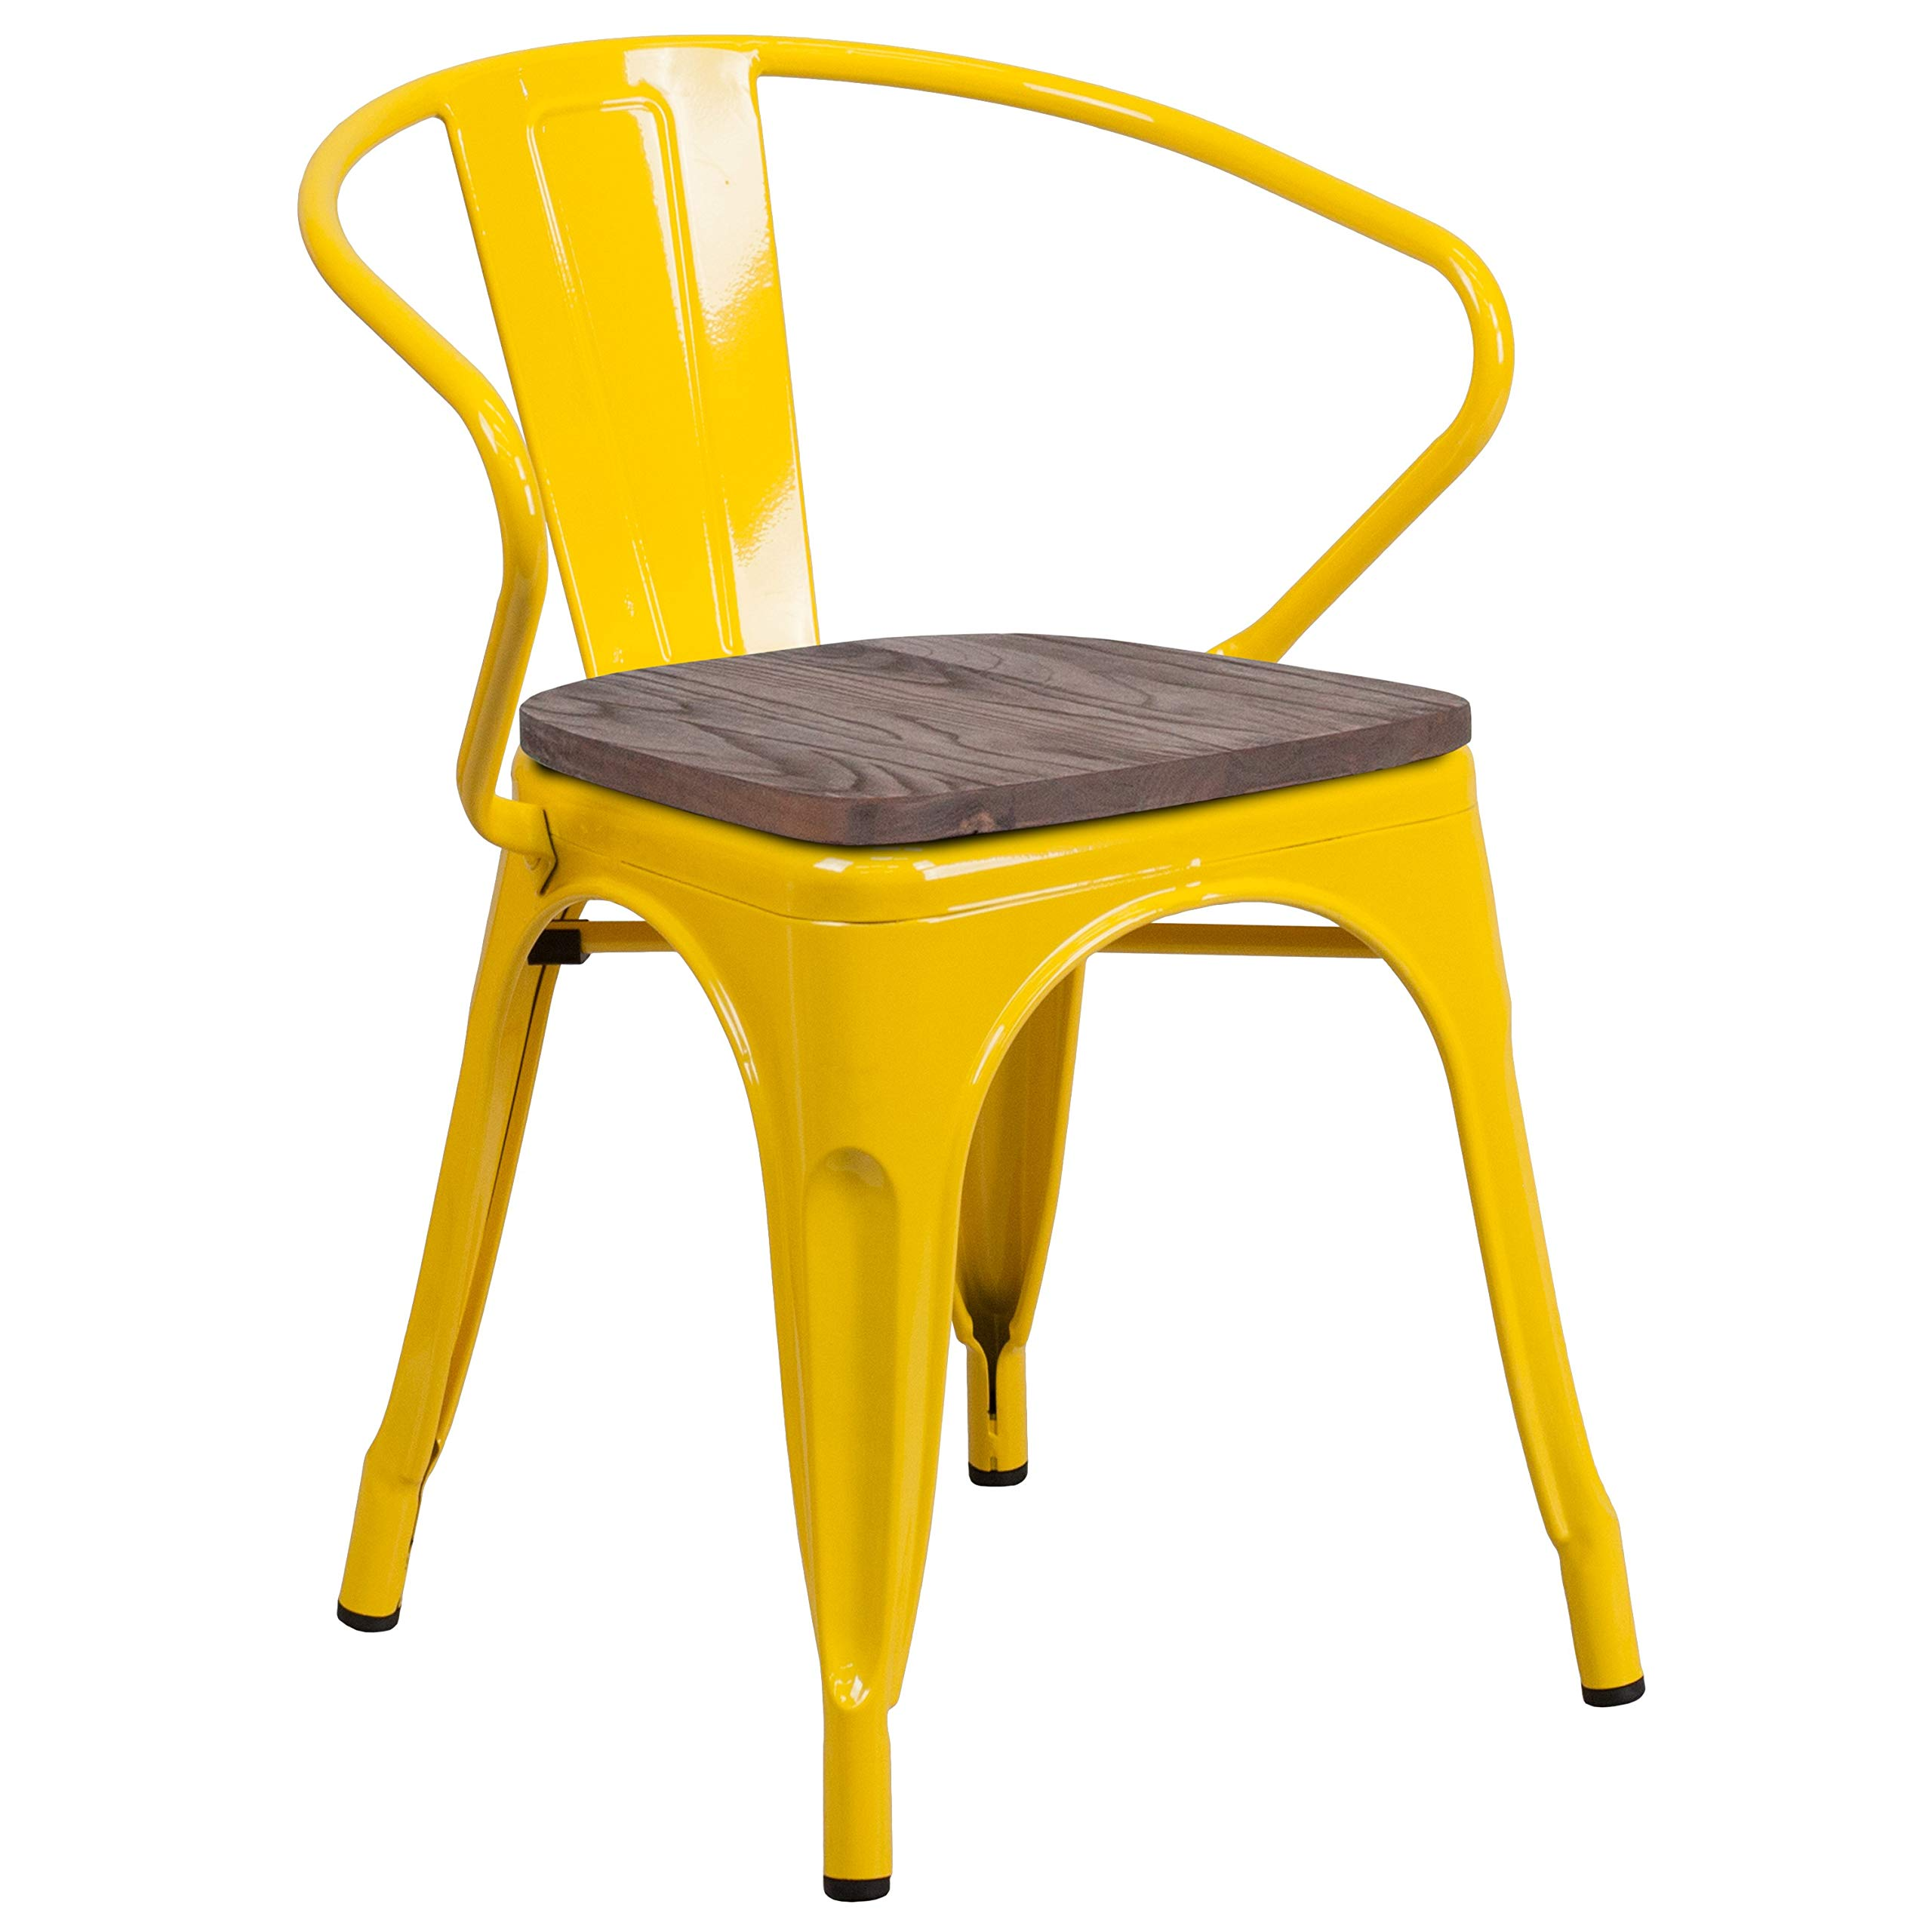 MFO Yellow Metal Chair with Wood Seat and Arms by My Friendly Office